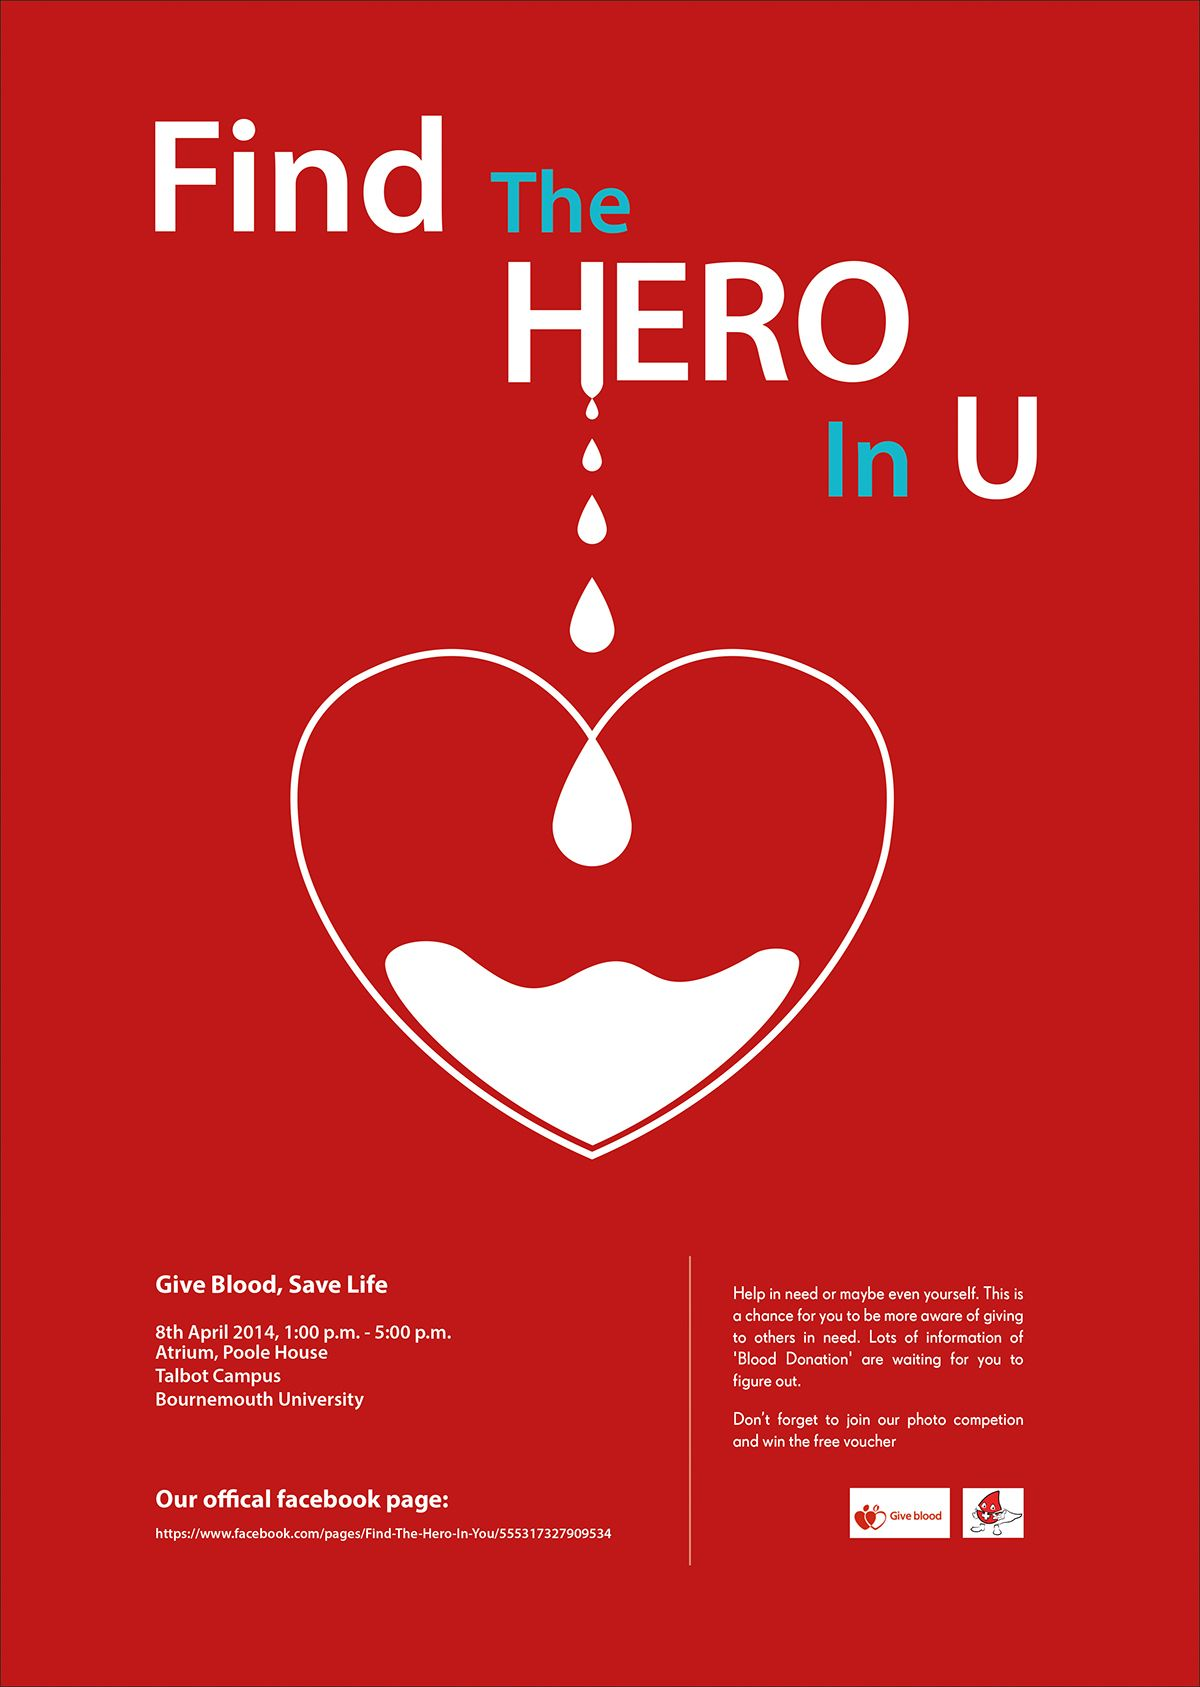 A Poster I Designed For The Blood Donation Event In